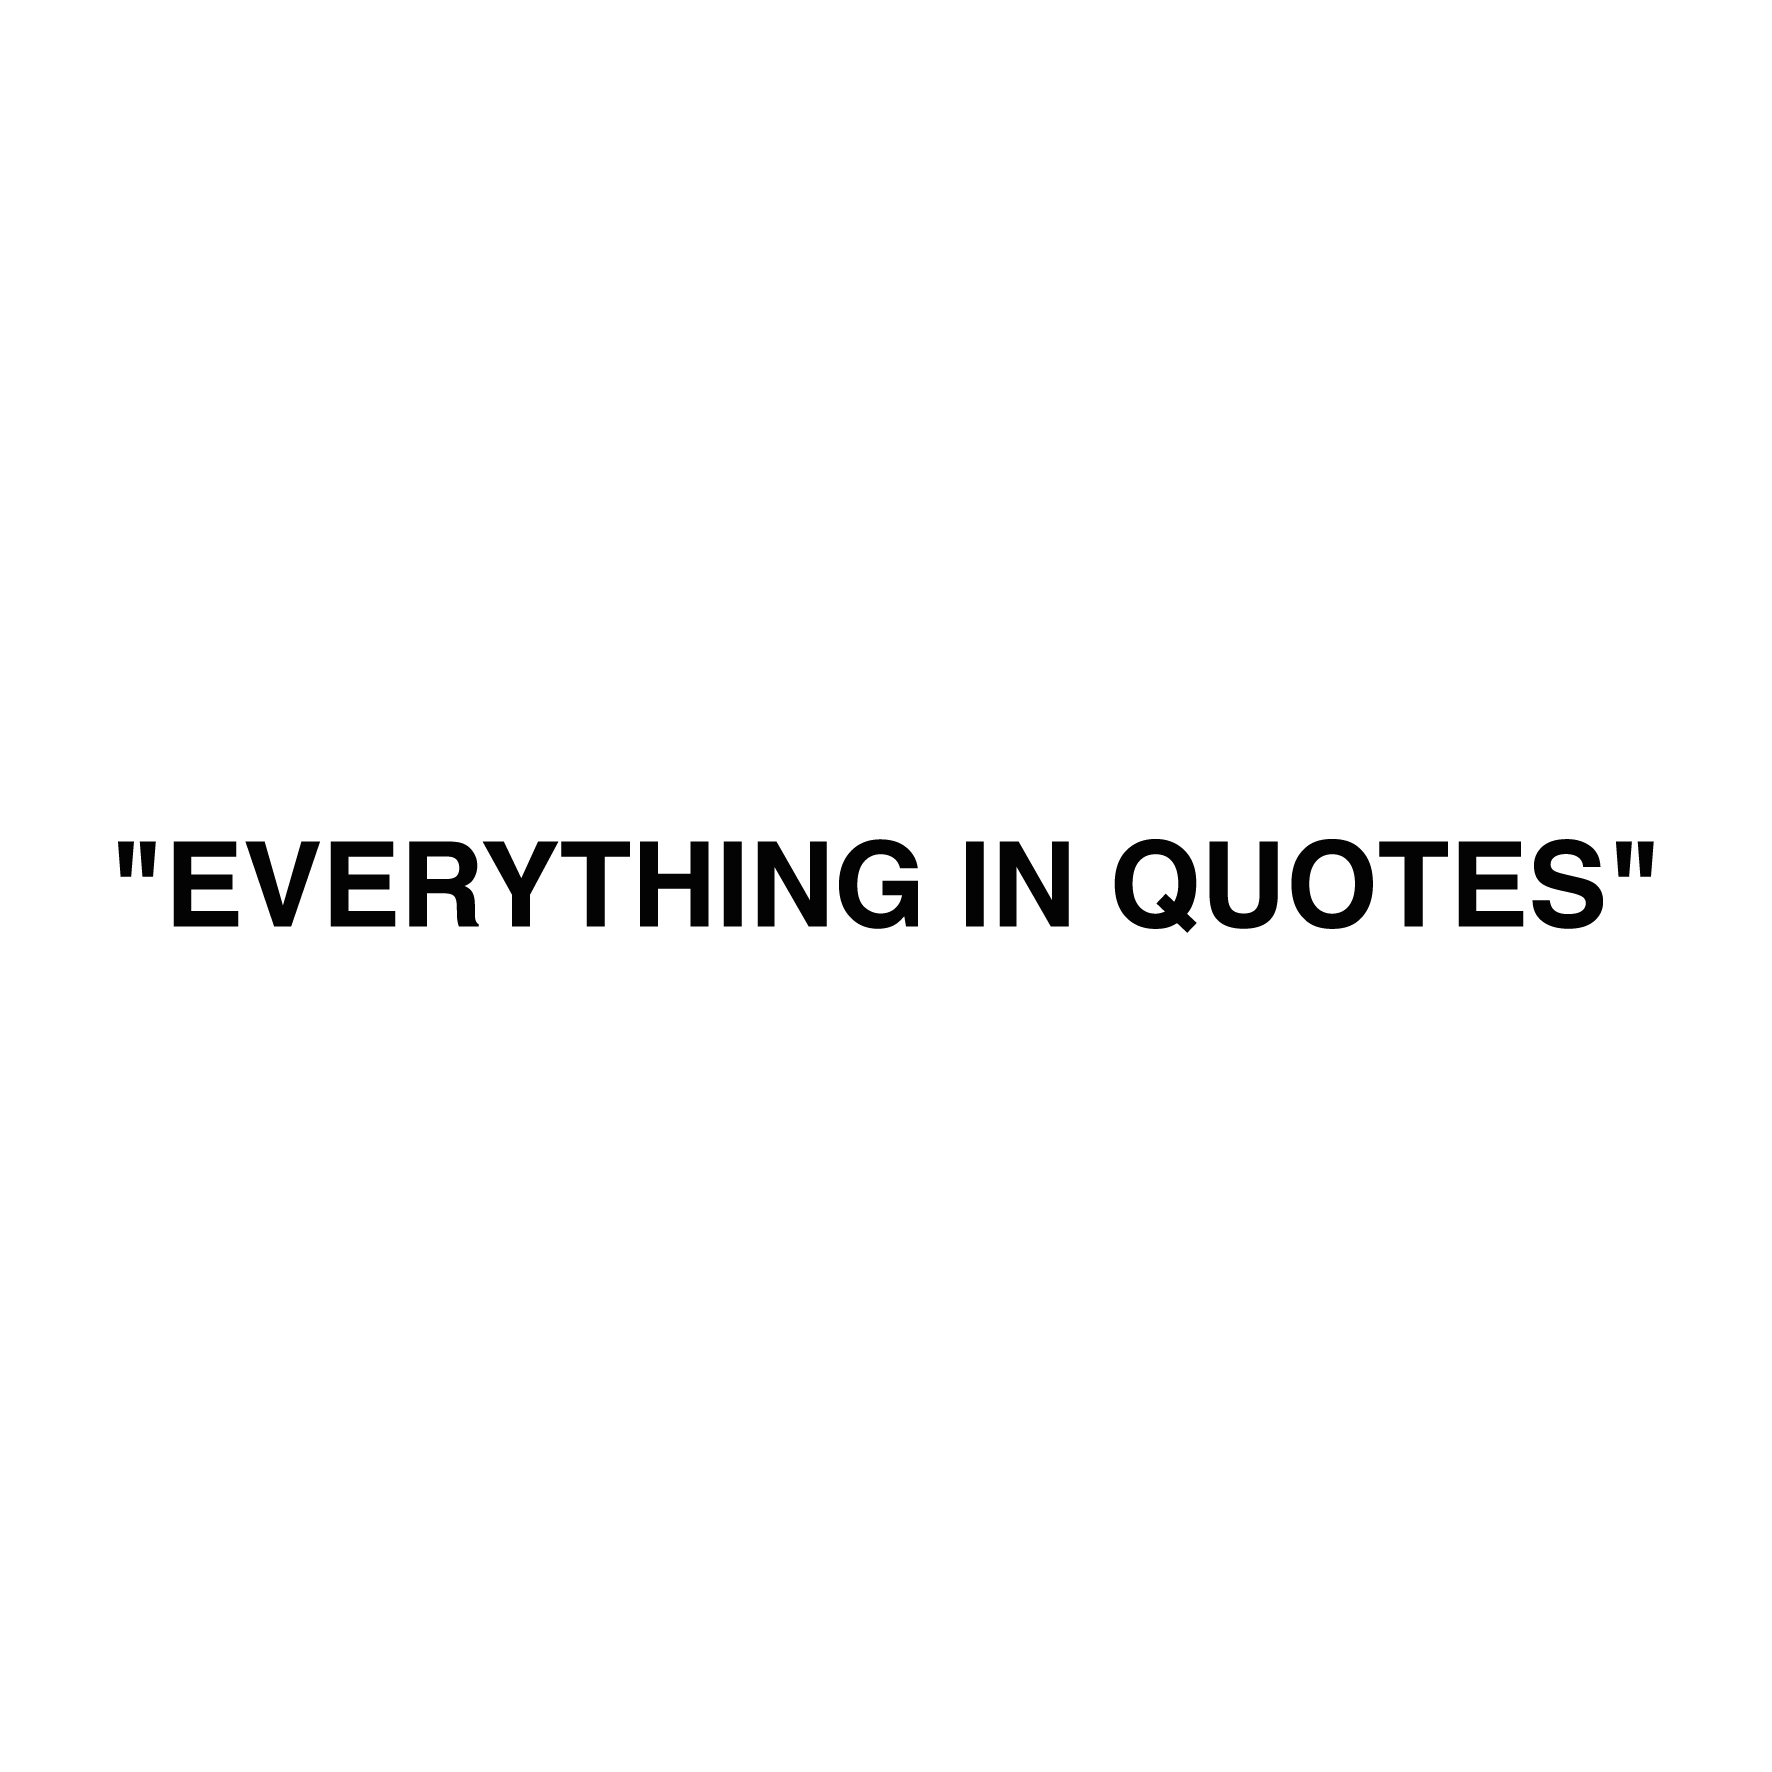 everything-in-quotes-texte